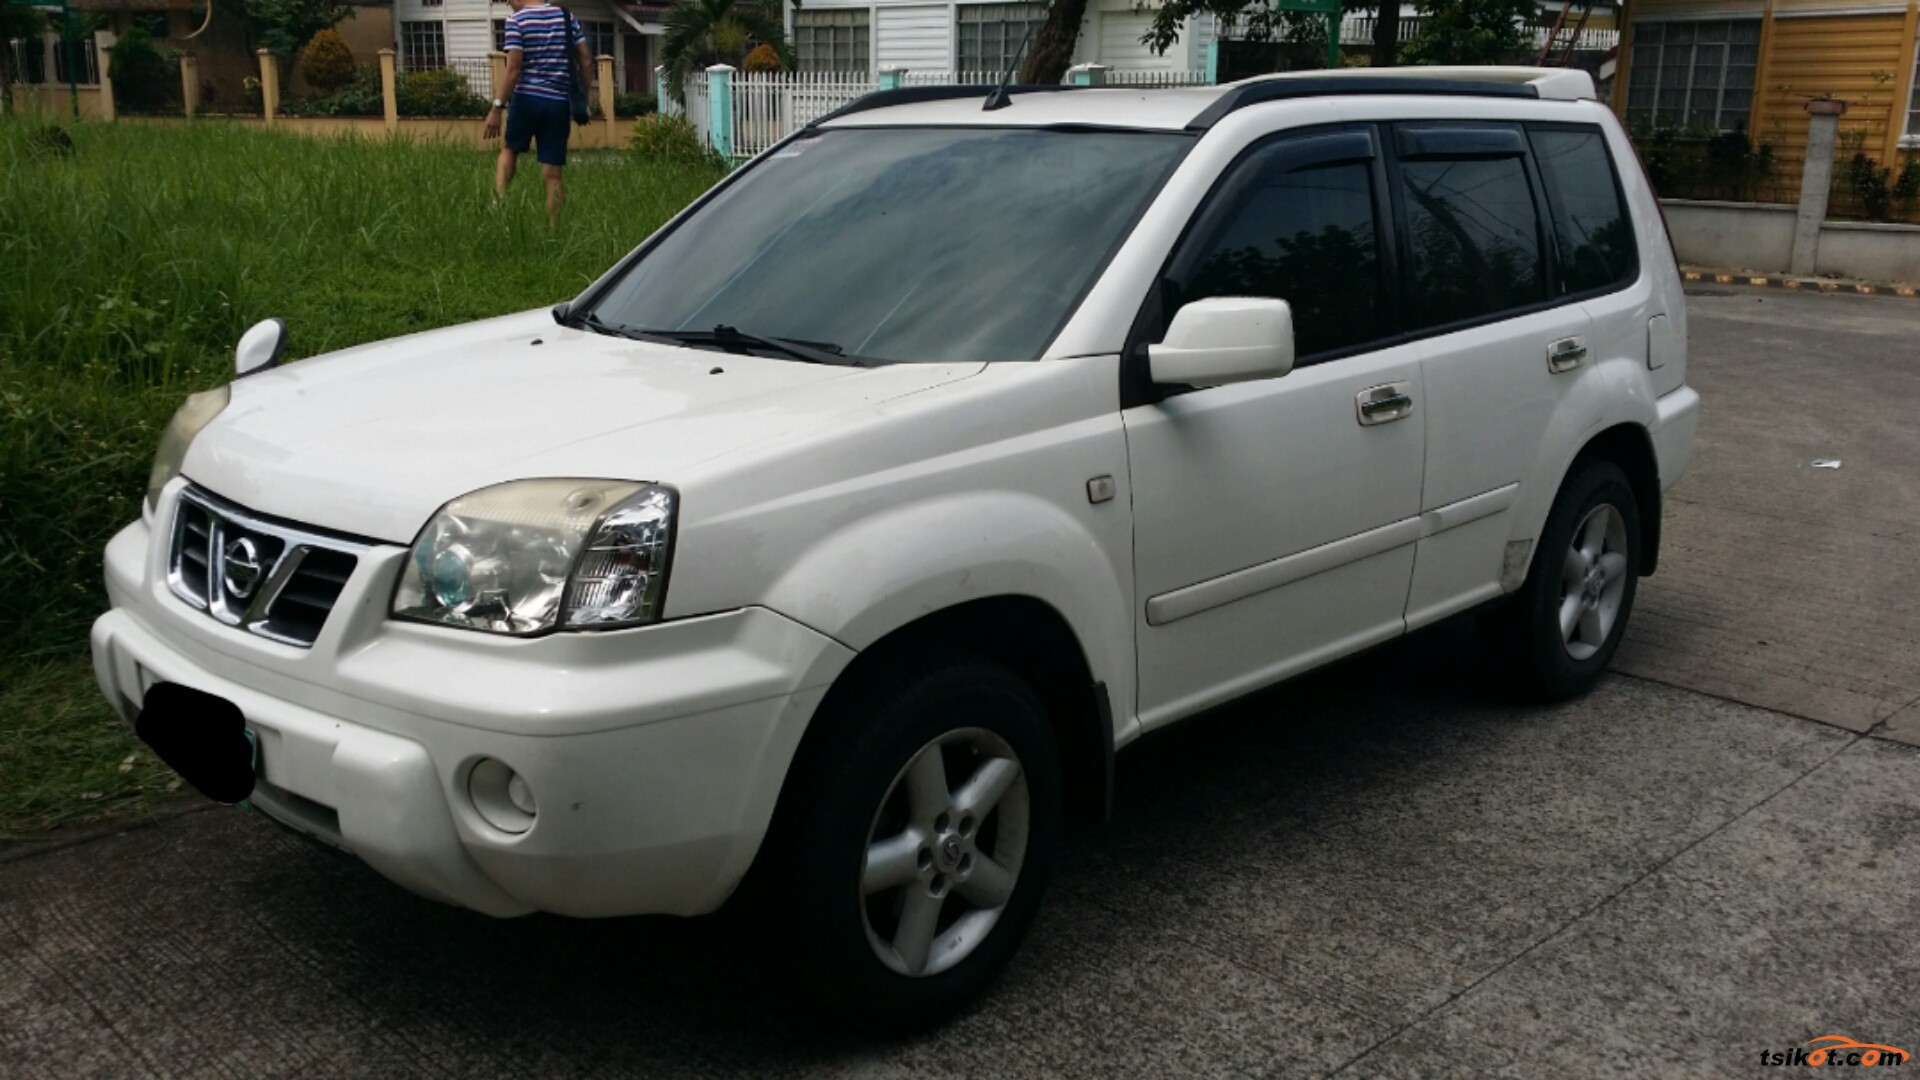 nissan x trail 2006 car for sale metro manila. Black Bedroom Furniture Sets. Home Design Ideas